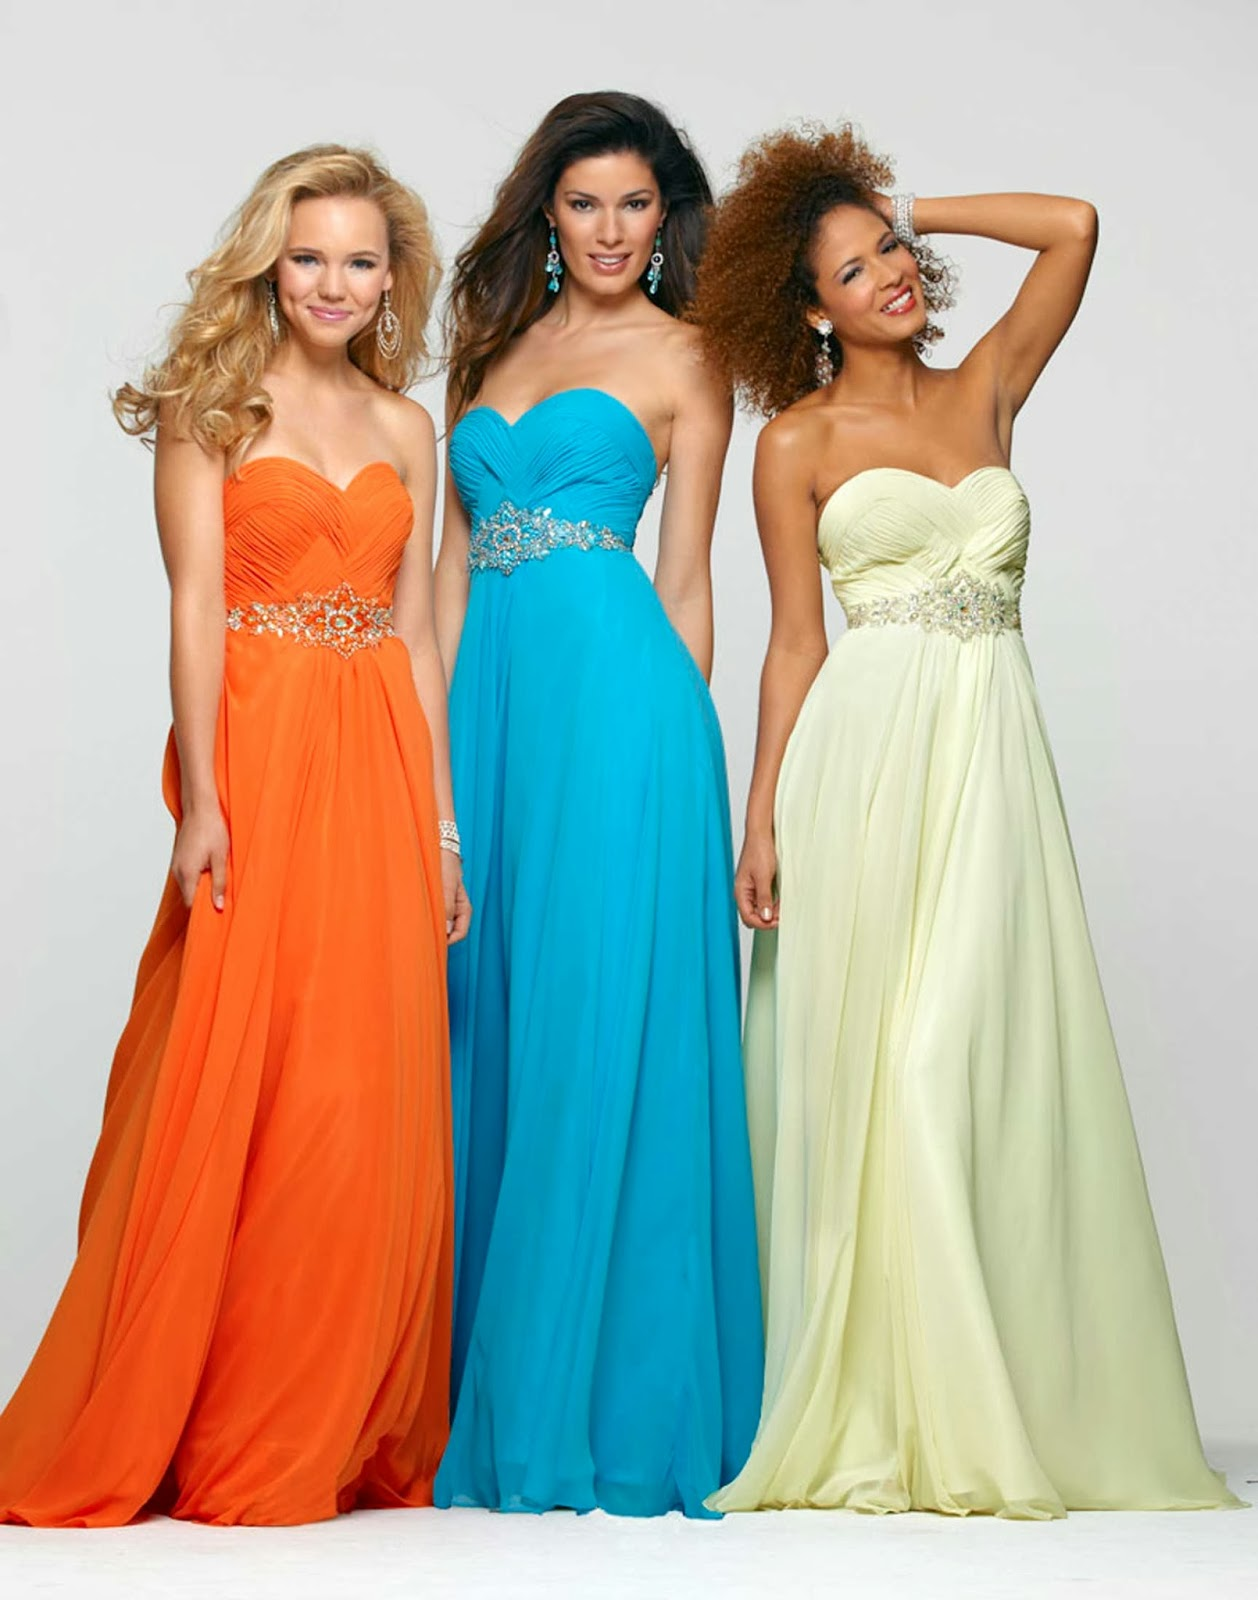 Styling in Delco: Prom Glamour on a shoestring